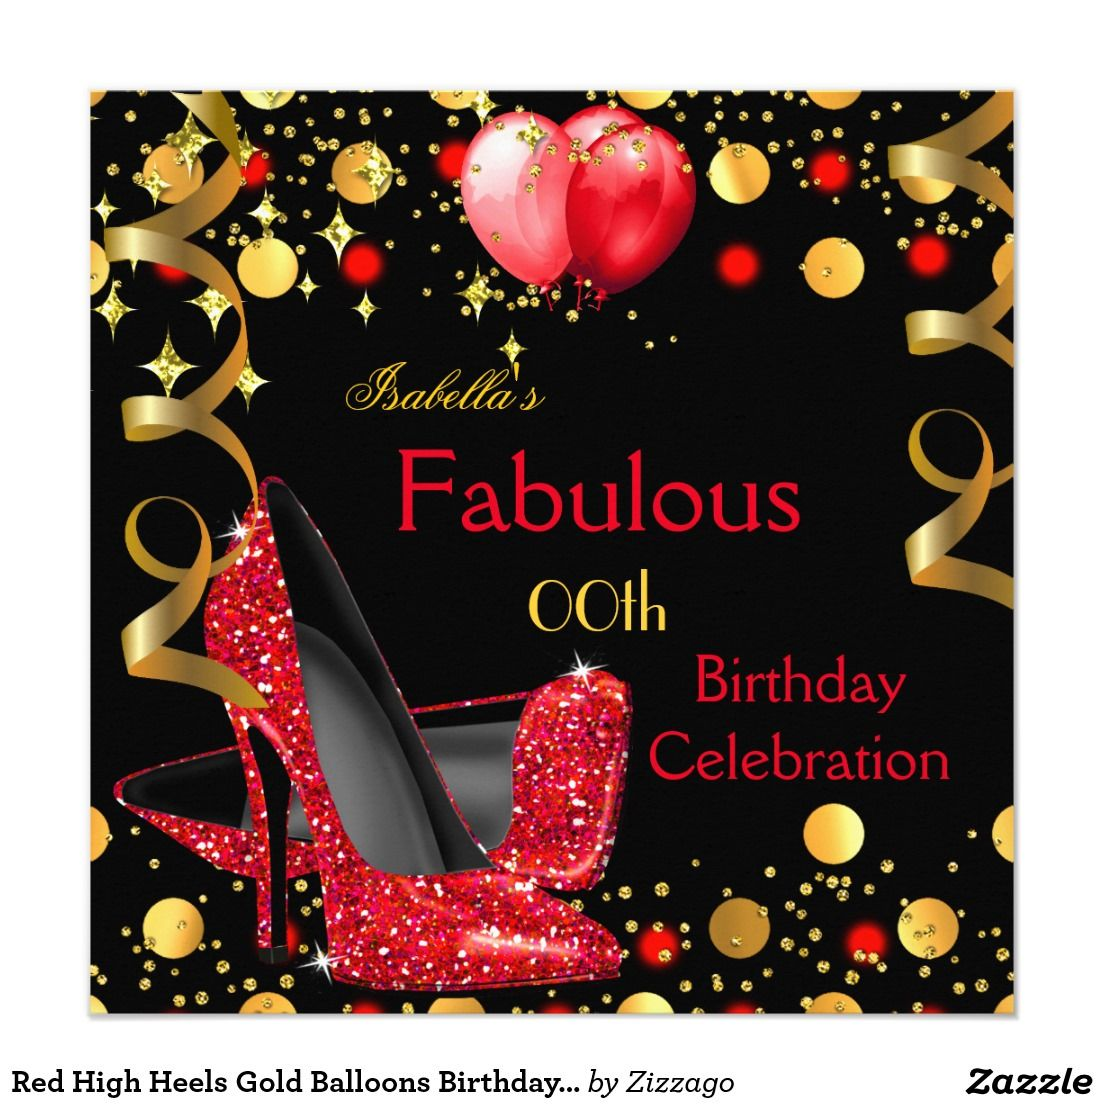 Red High Heels Gold Balloons Birthday Party Card | Gold balloons ...